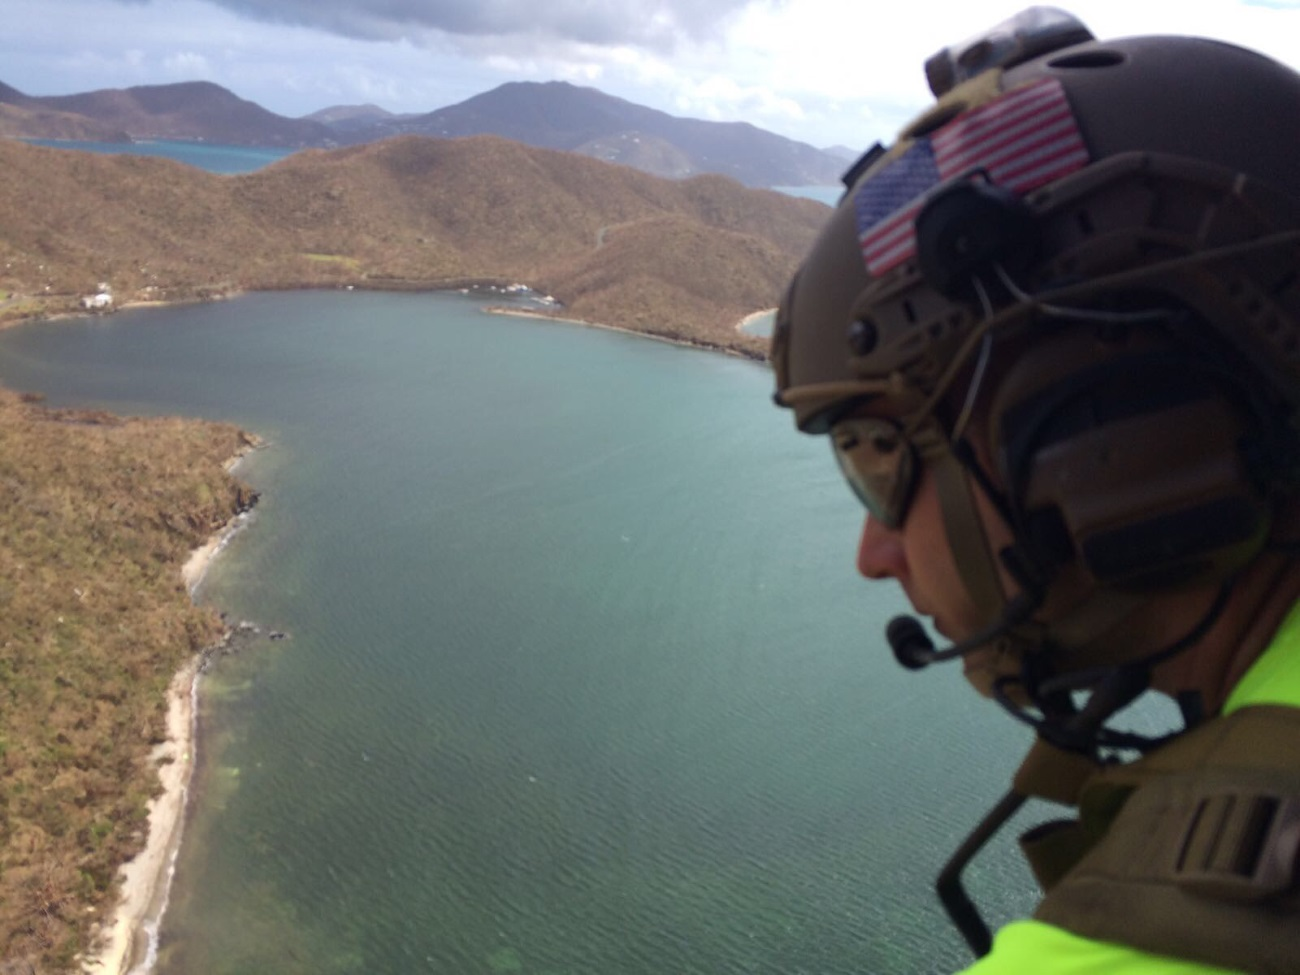 Five airmen from the Kentucky Air National Guard's 123rd Special Tactics Squadron conduct search-and-rescue missions on St. John, U.S. Virgin Islands, Sept. 9, 2017, in conjunction with the Kentucky Army National Guard's 63rd Theater Aviation Brigade. The airmen have controlled multiple helicopter landing zones and evacuated numerous victims by hoisting them to Kentucky Army Guard UH-60 Black Hawk helicopters for evacuation. (Air National Guard)